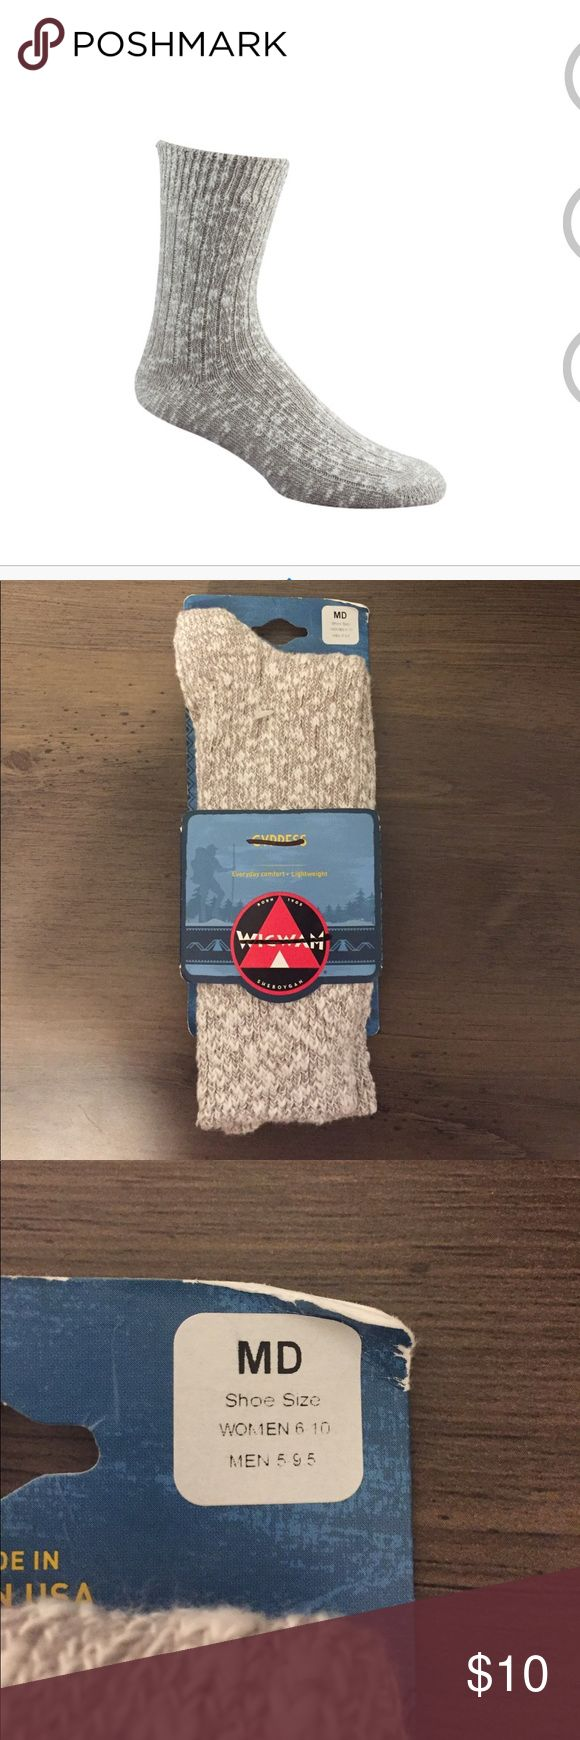 WigWam Cypress Socks NWT/  WIGWAM SOCKS CYPRESS Classic crew ragg-look, with cotton softness and support.  MATERIALS: 70% Cotton, 30% Stretch Nylon  PRODUCT FEATURES: Light Weight/Soft/Classic WigWam Underwear & Socks Casual Socks